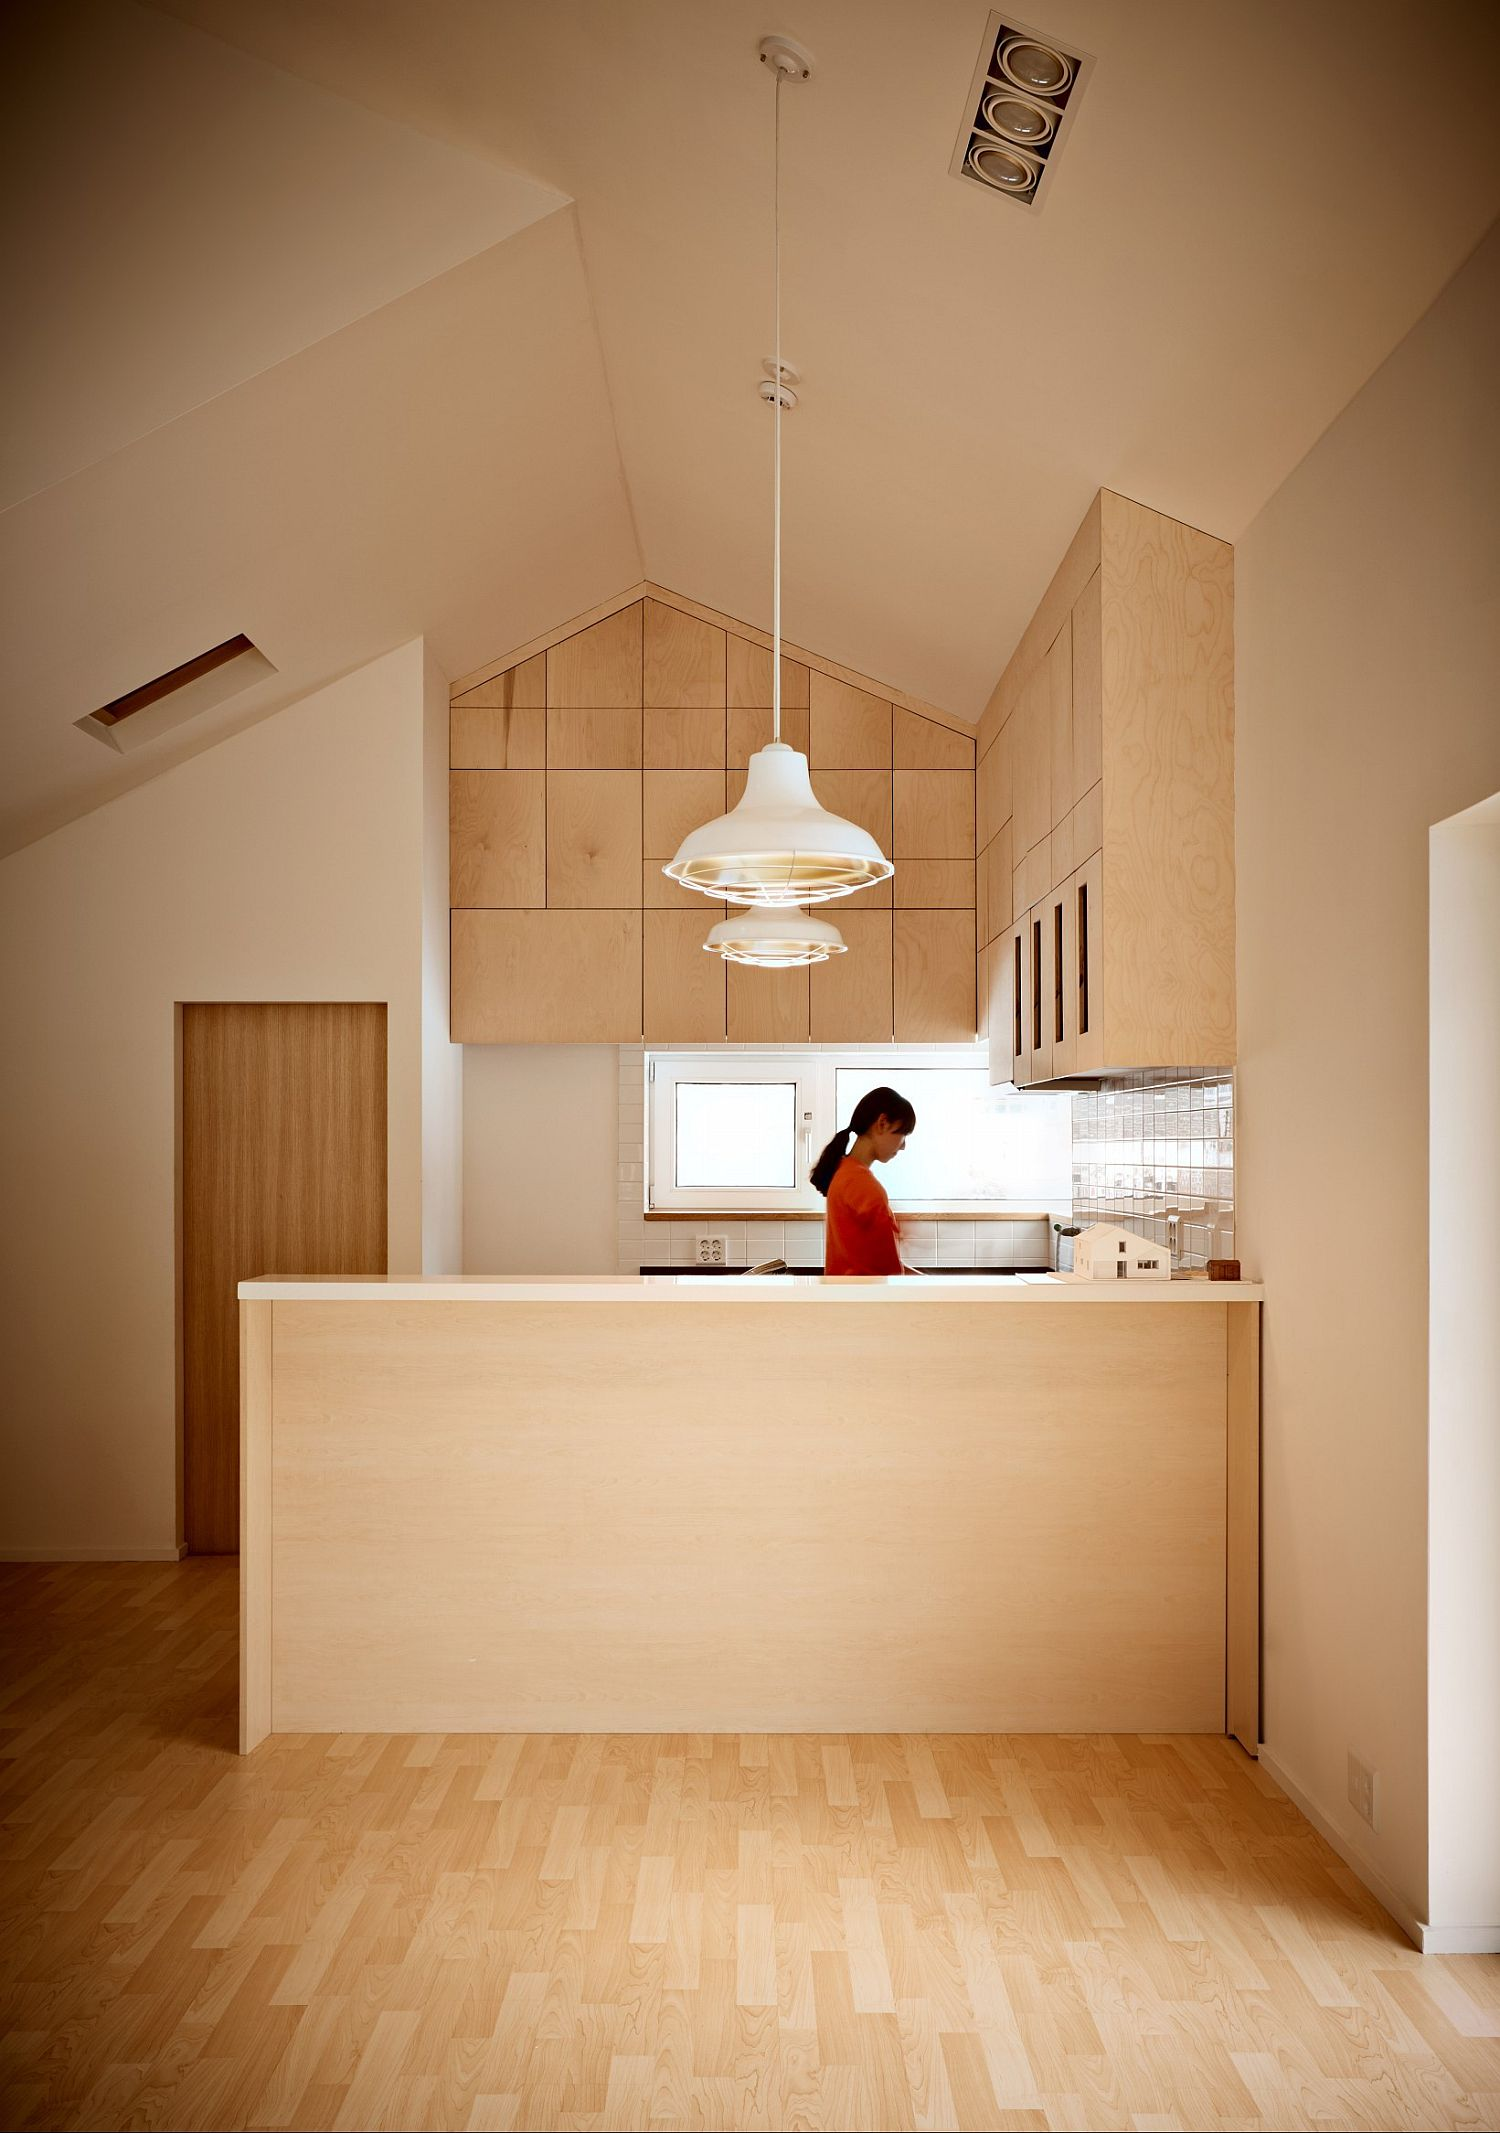 Kitchen in the corner that maximizes space with ease